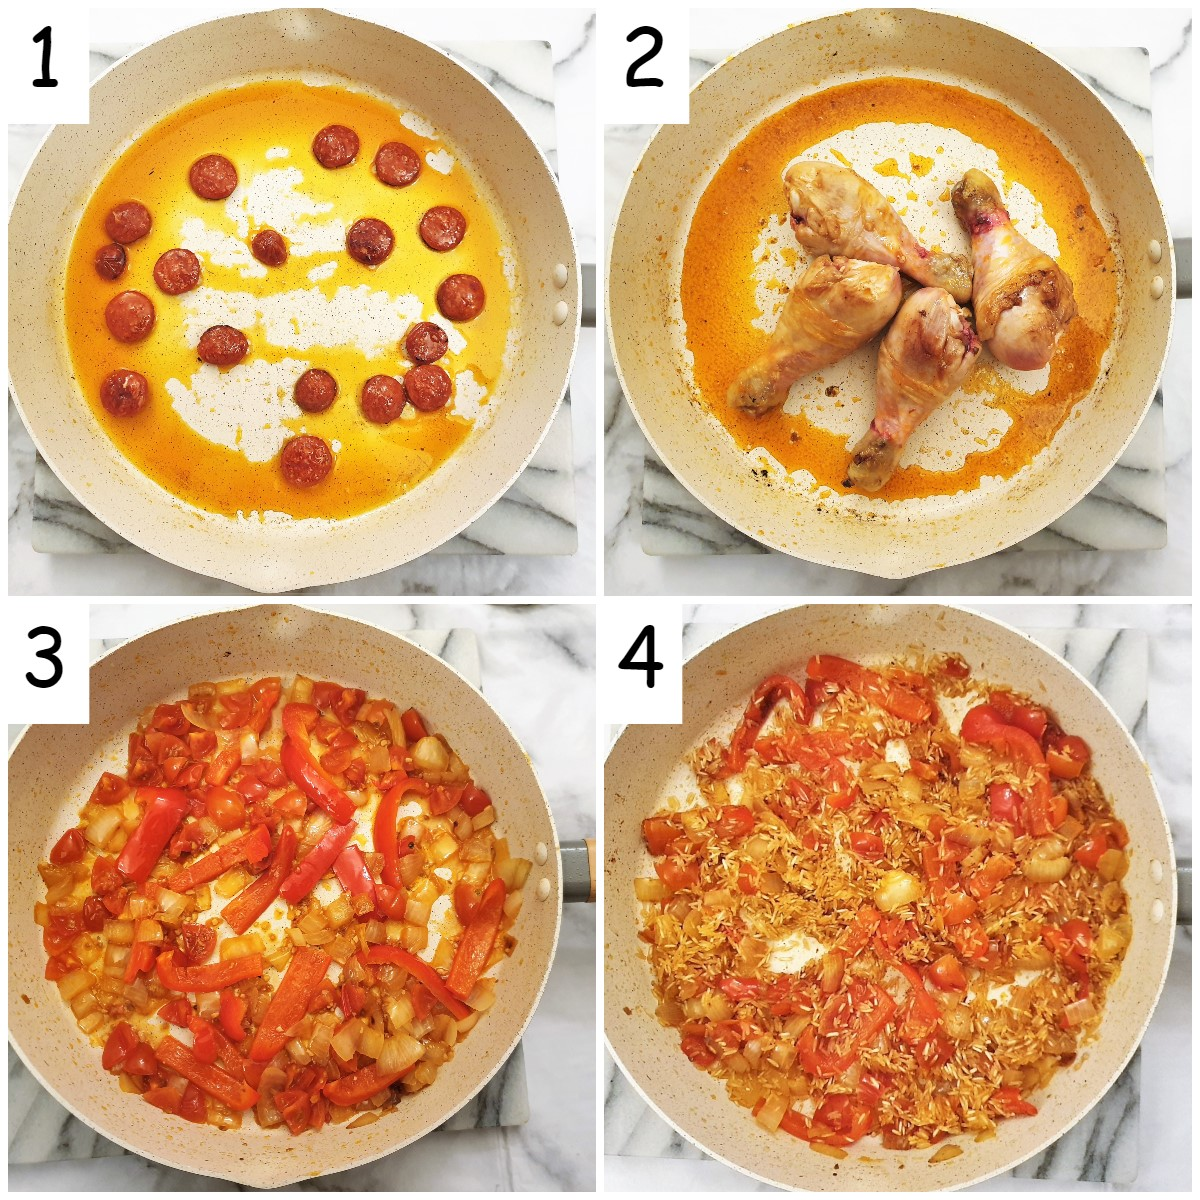 Steps for making the paella